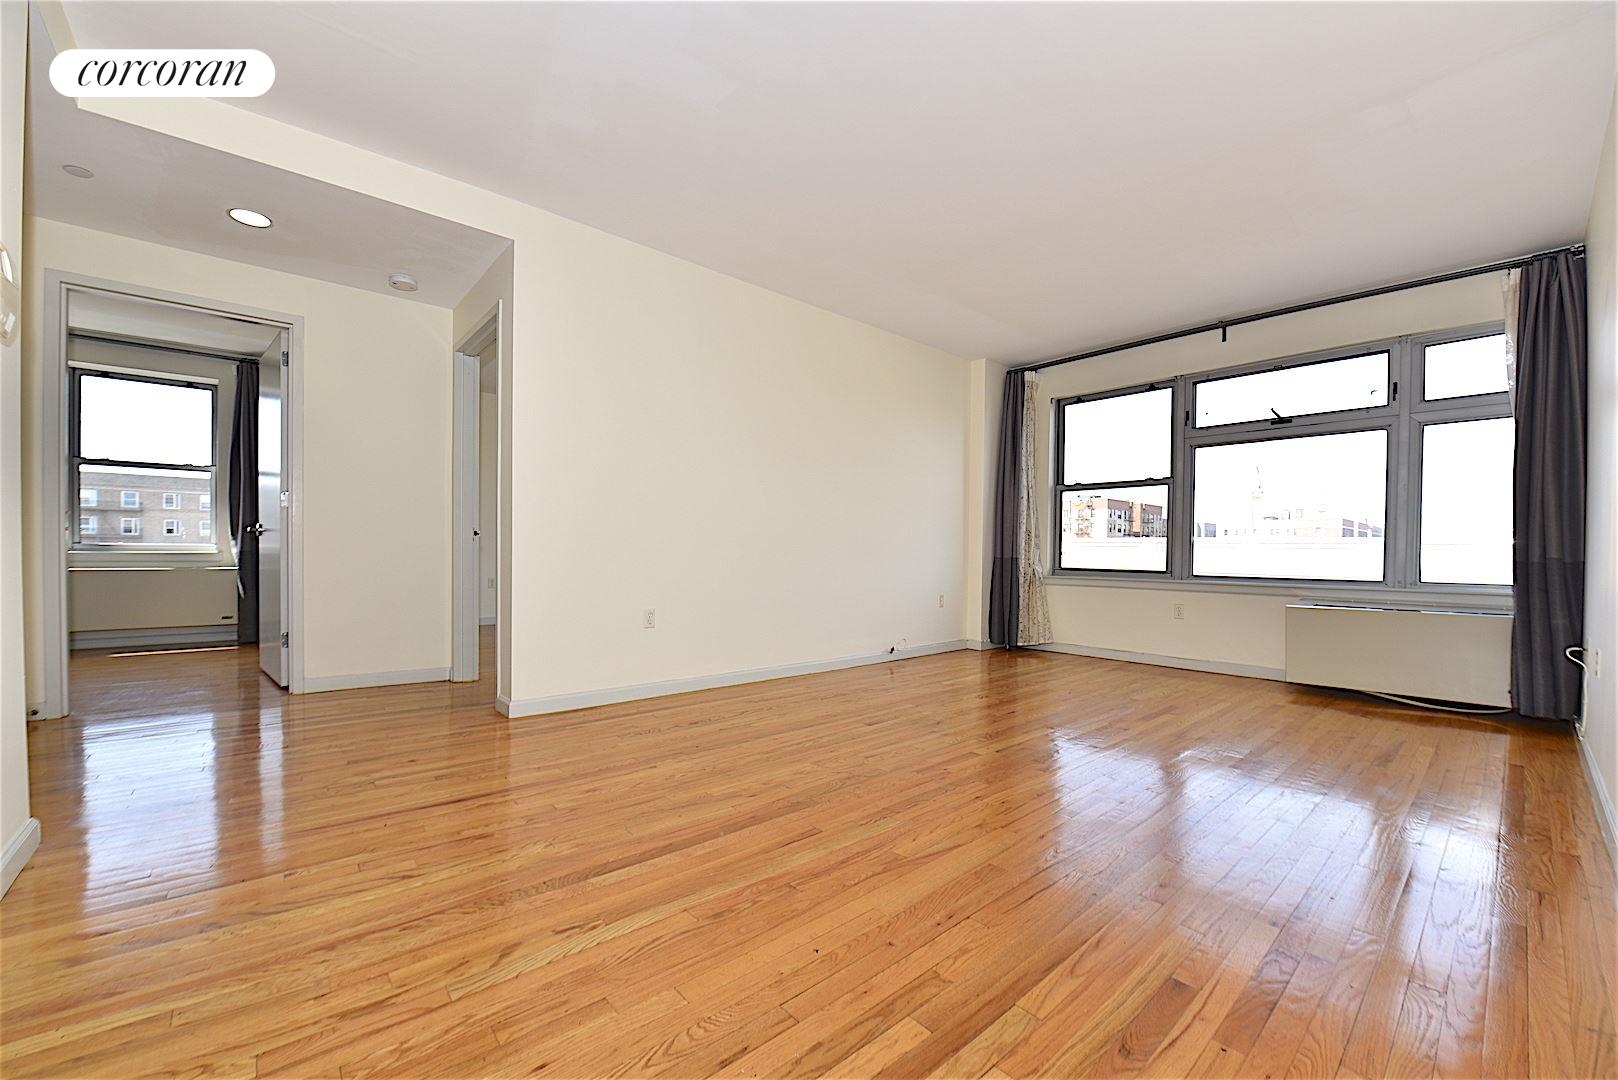 41-02 Queens Boulevard, 3D, Living Room